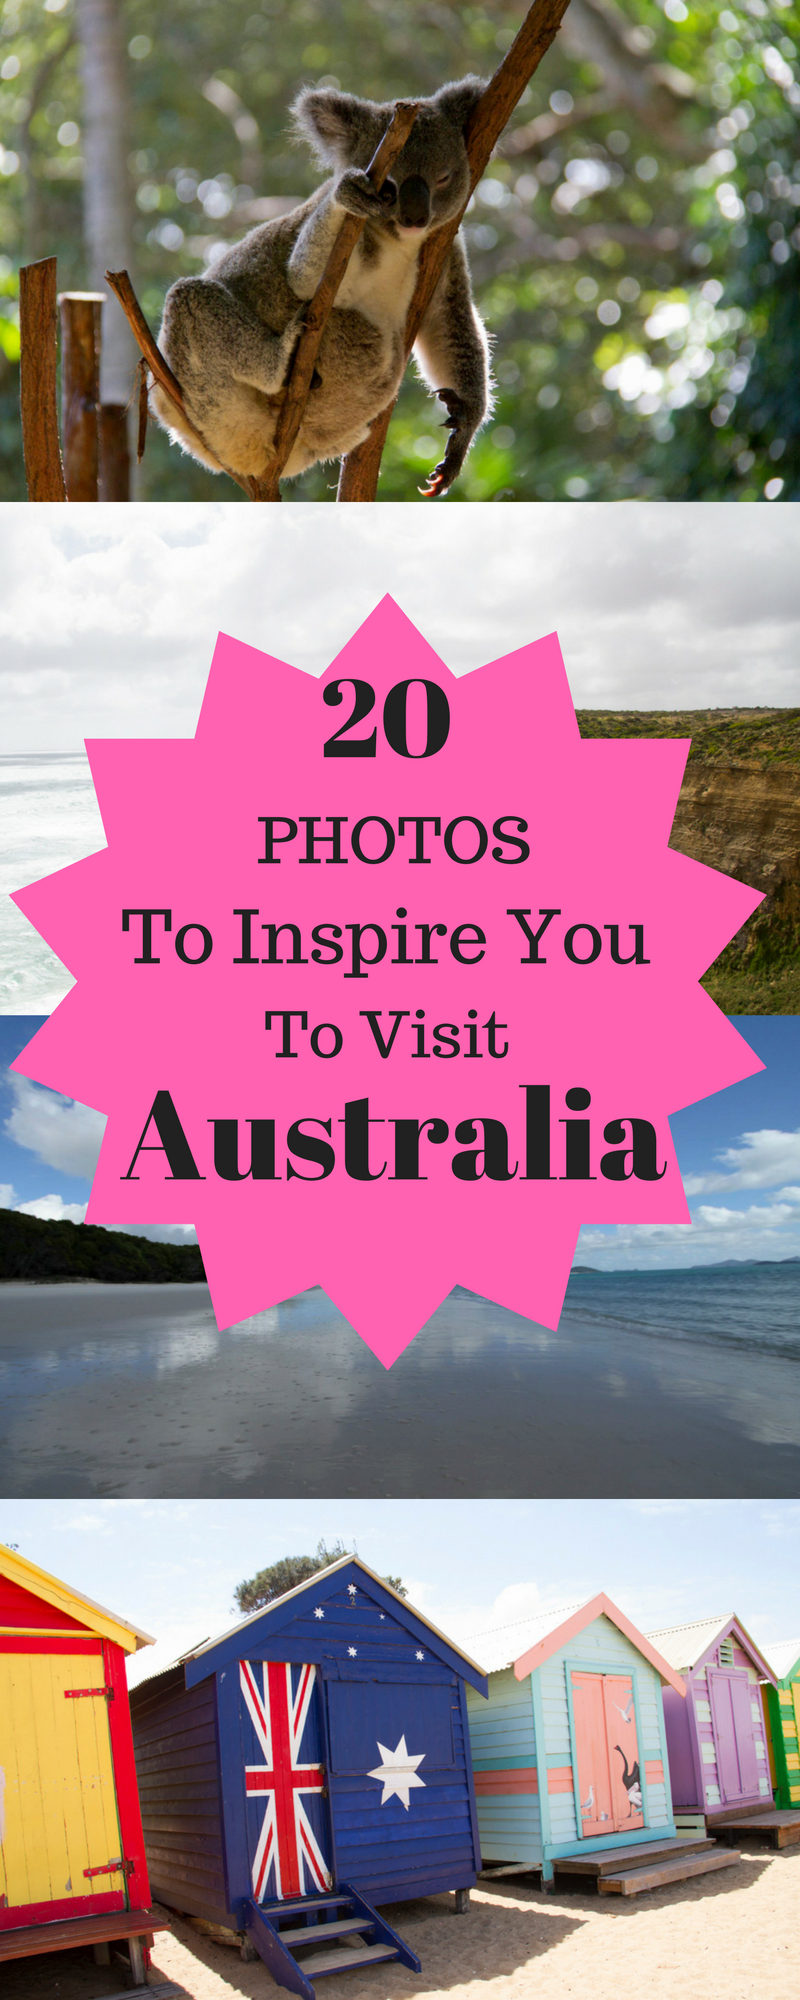 20 Photos to Inspire You to Visit Australia